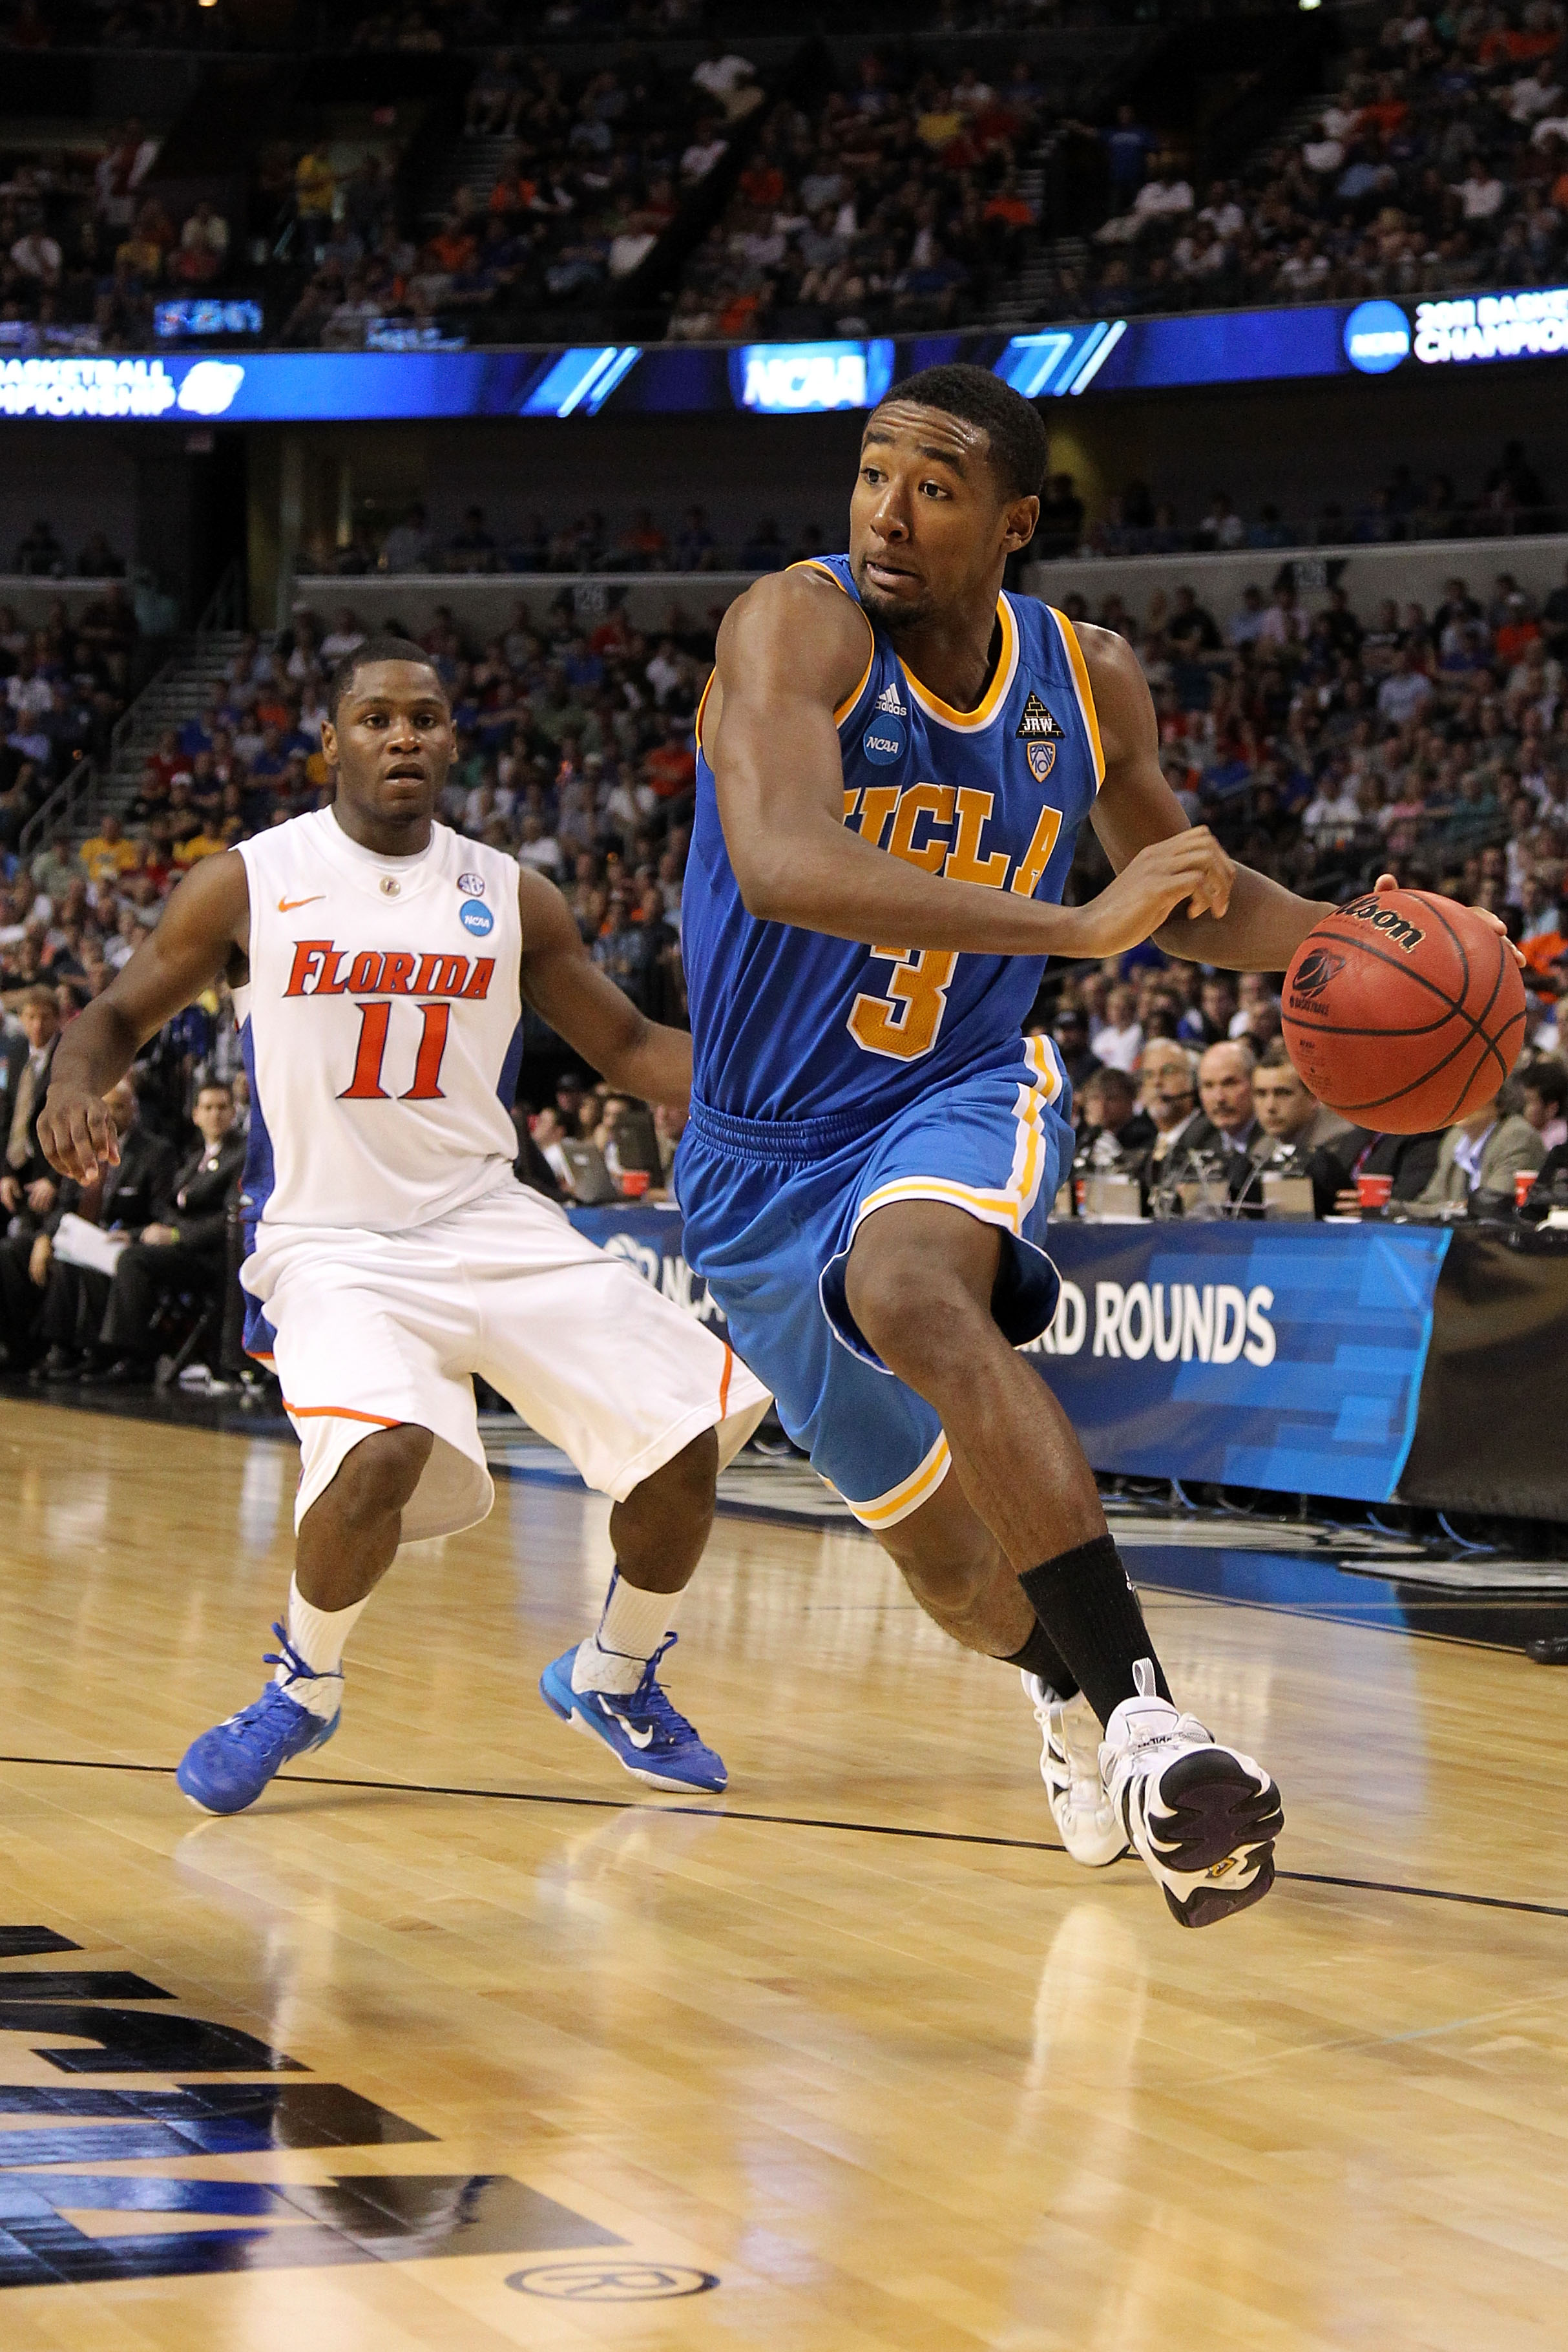 TAMPA, FL - MARCH 19:  Malcolm Lee #3 of the UCLA Bruins drives against Erving Walker #11 of the Florida Gators during the third round of the 2011 NCAA men's basketball tournament at St. Pete Times Forum on March 19, 2011 in Tampa, Florida.  (Photo by Mik